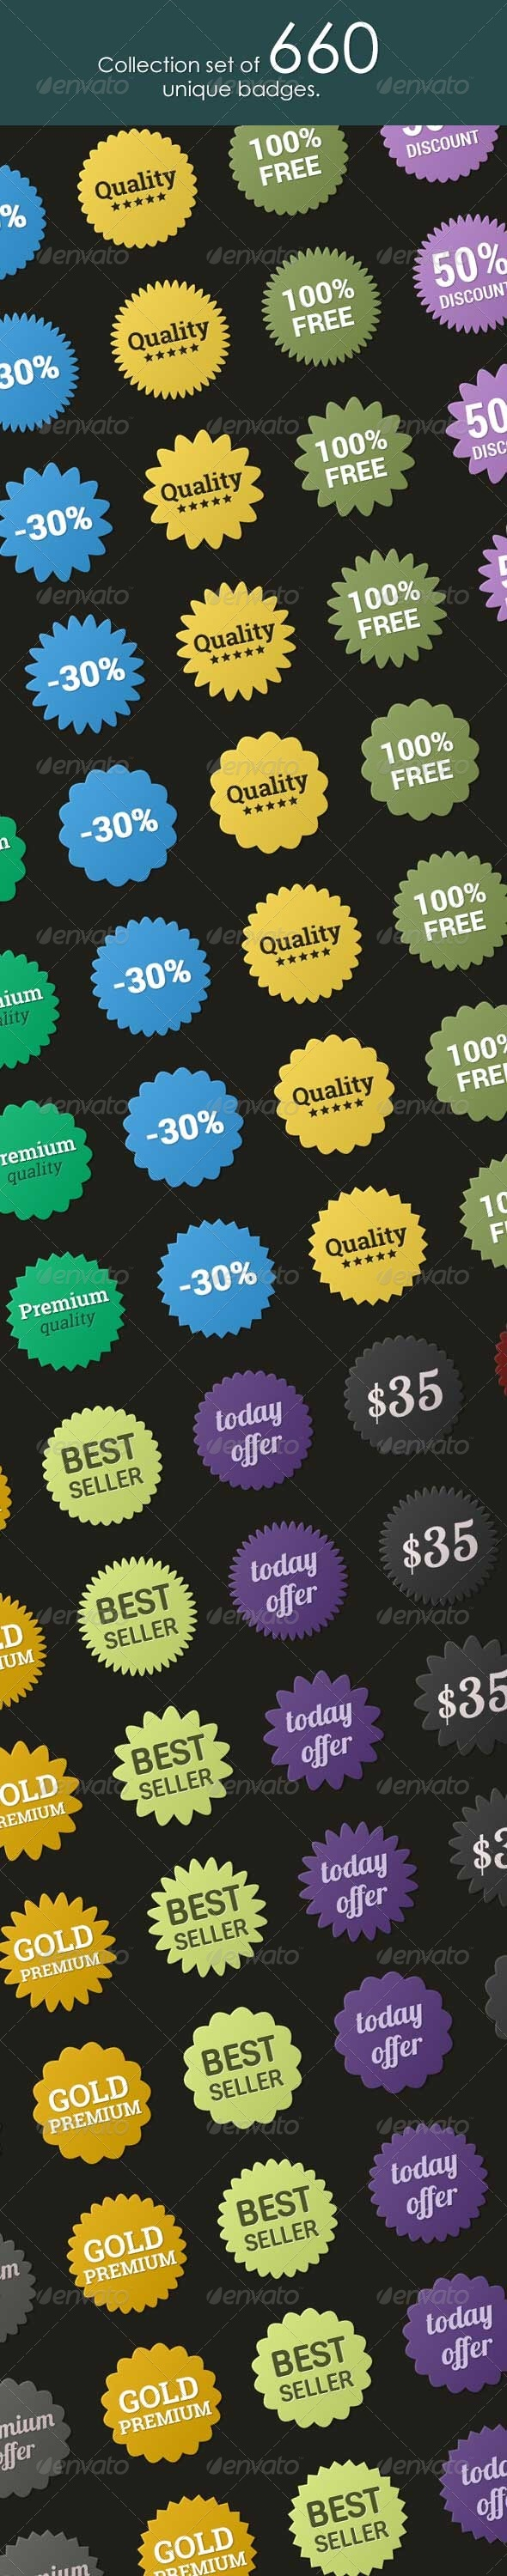 Collection set of 660 Badges - Badges & Stickers Web Elements